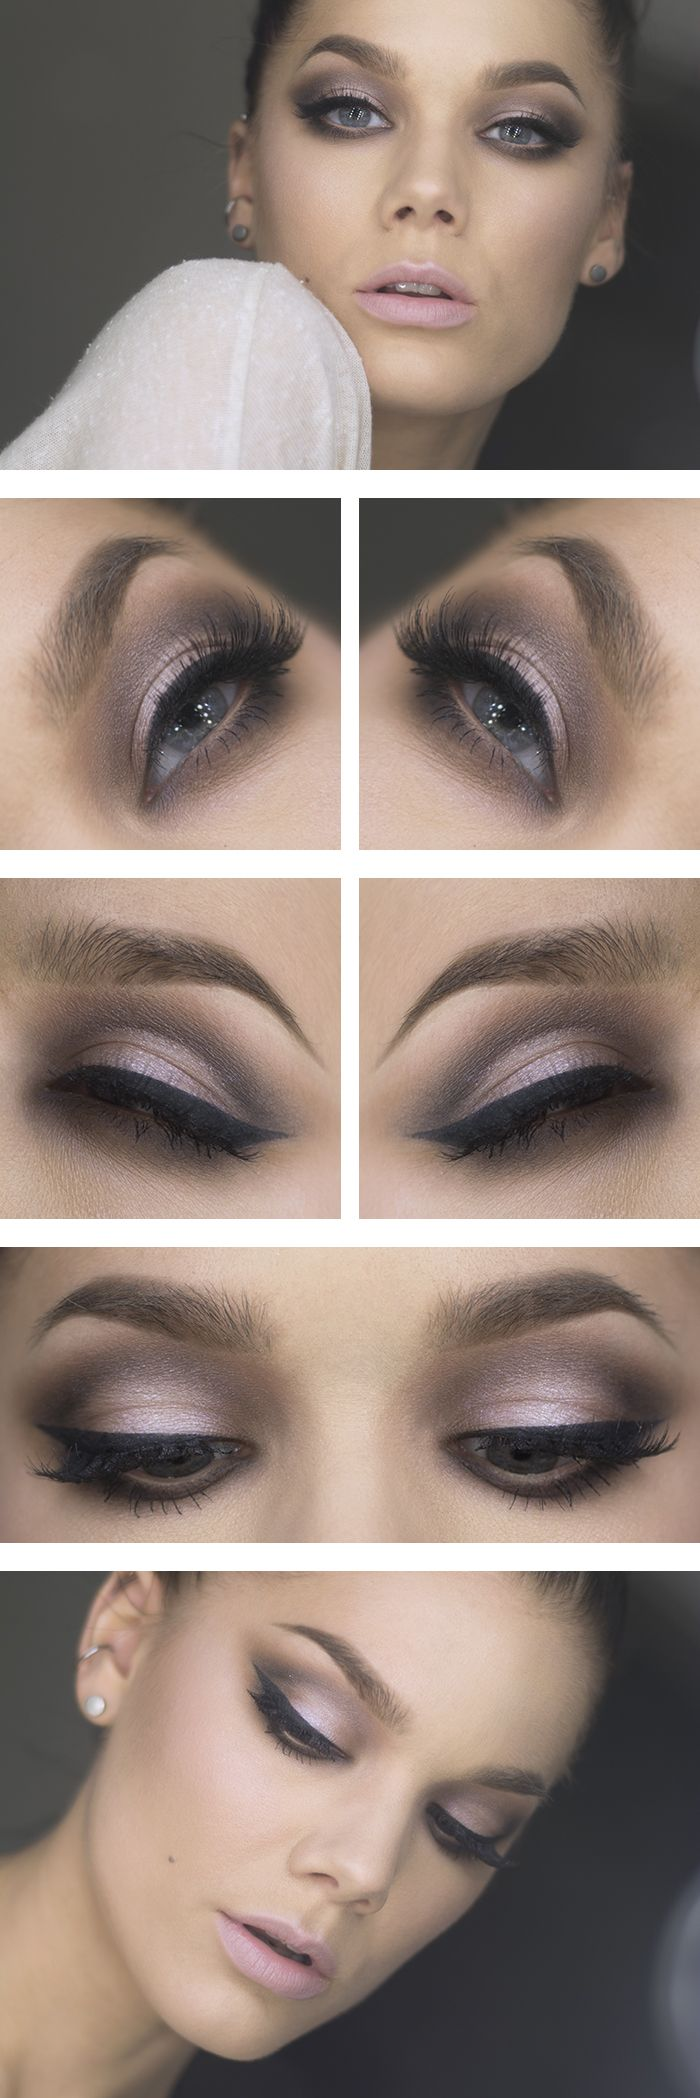 """Today's Look : """"H103"""" -Linda Hallberg ( this is such a romantic look, soft pinks and grays make up this smoky eye, a thick eyeliner and baby pink lips) 01/30/14"""